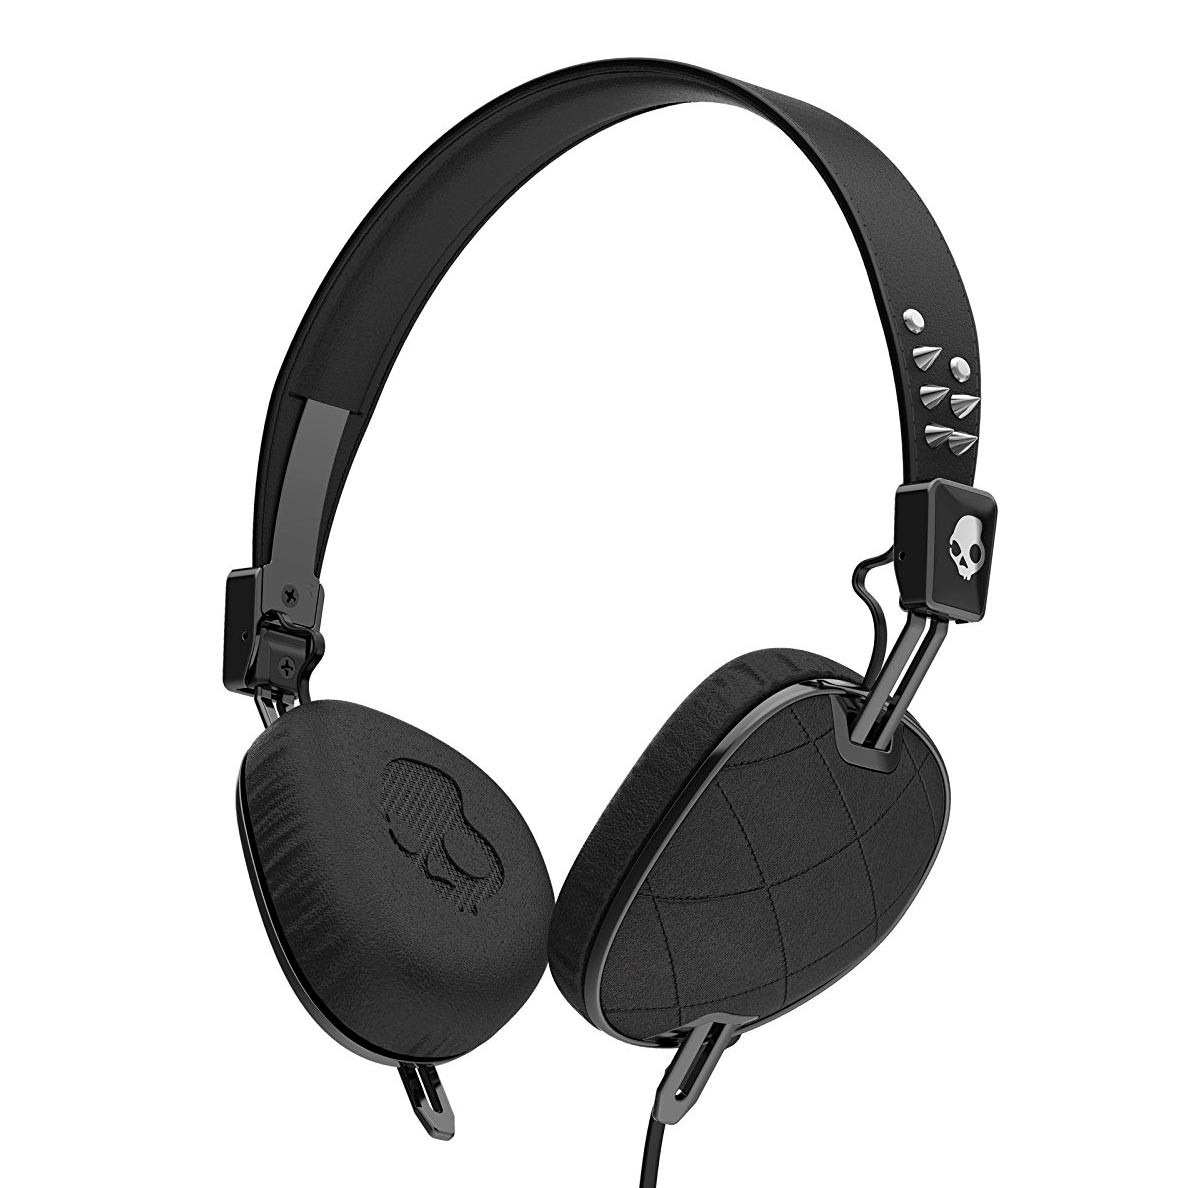 Sluchátka Skullcandy Knockout quilted black